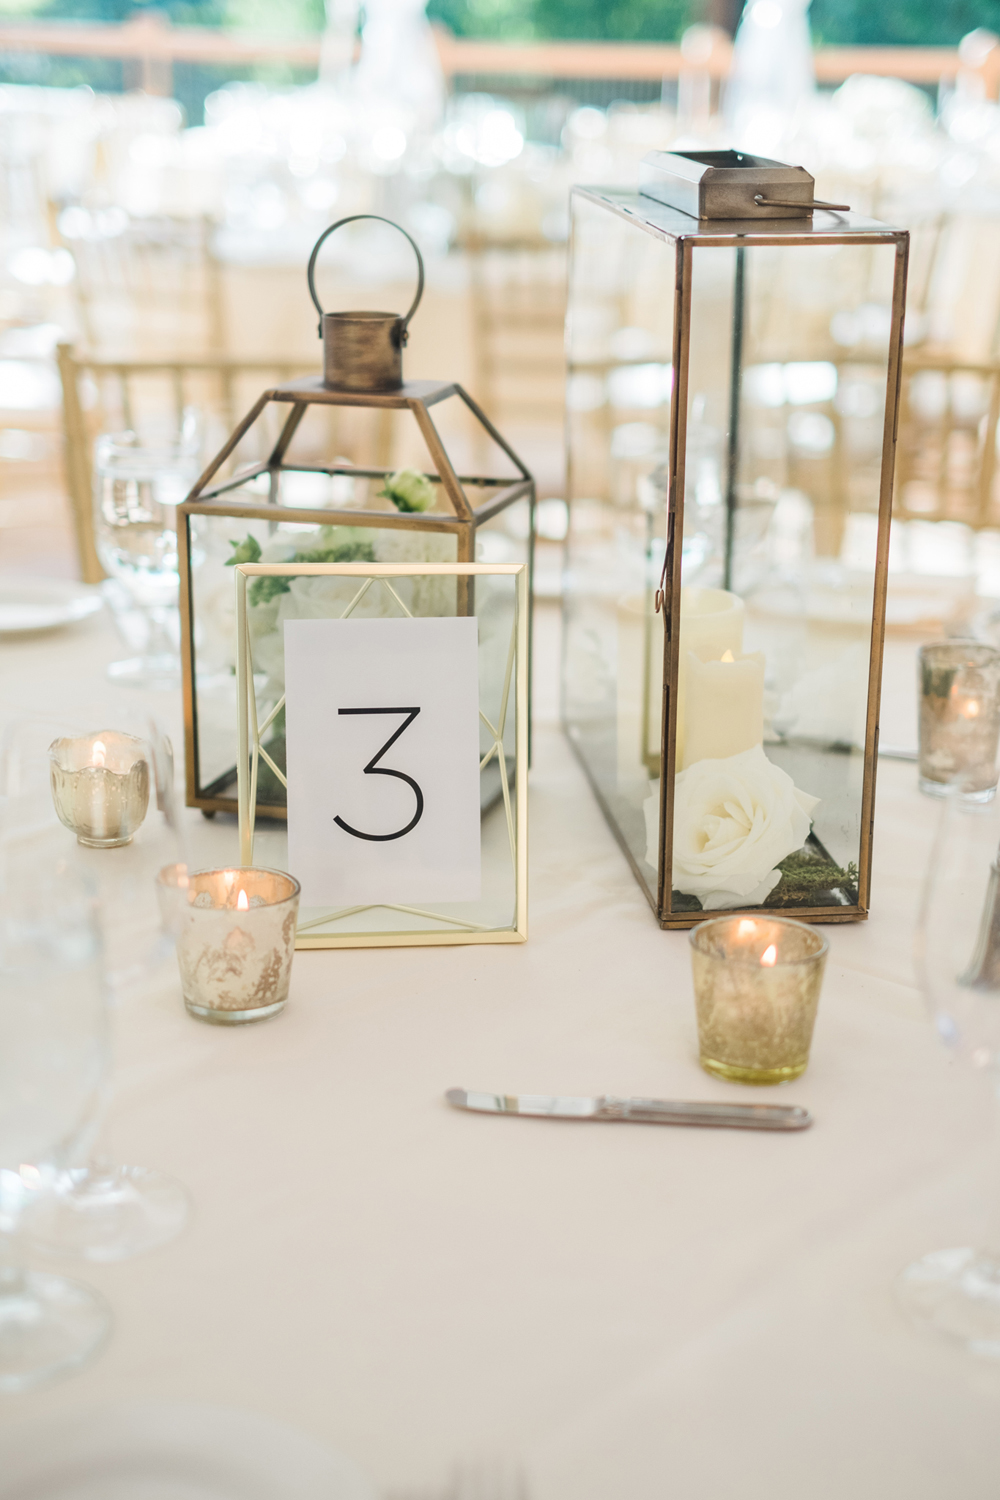 Classic Snowmass - Aspen, Colorado Wedding l Featured on Rocky Mountain Bride